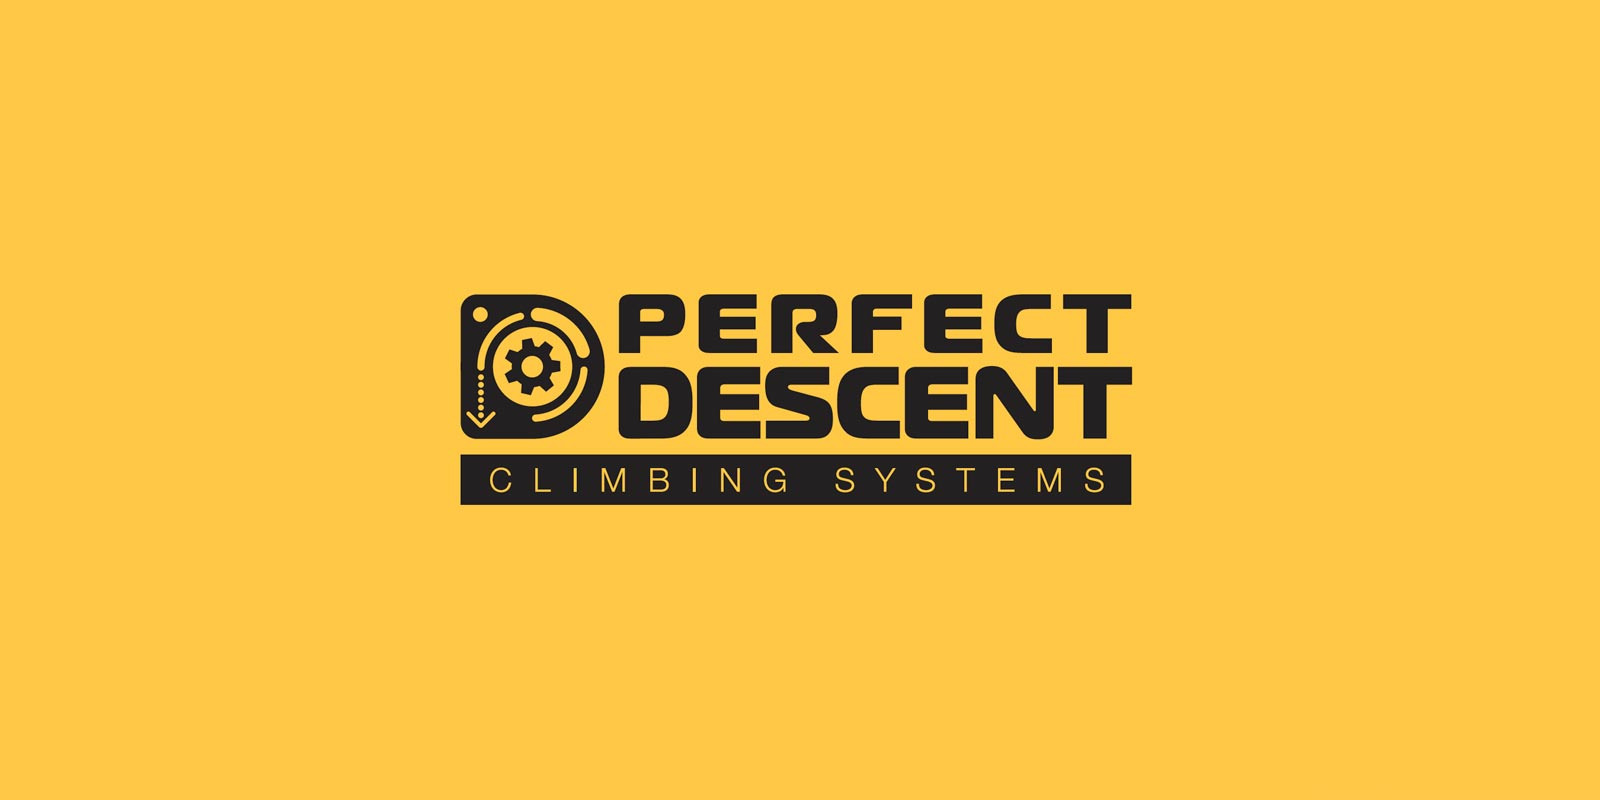 Perfect Descent updated horizontal logo in black shown on a yellow background.